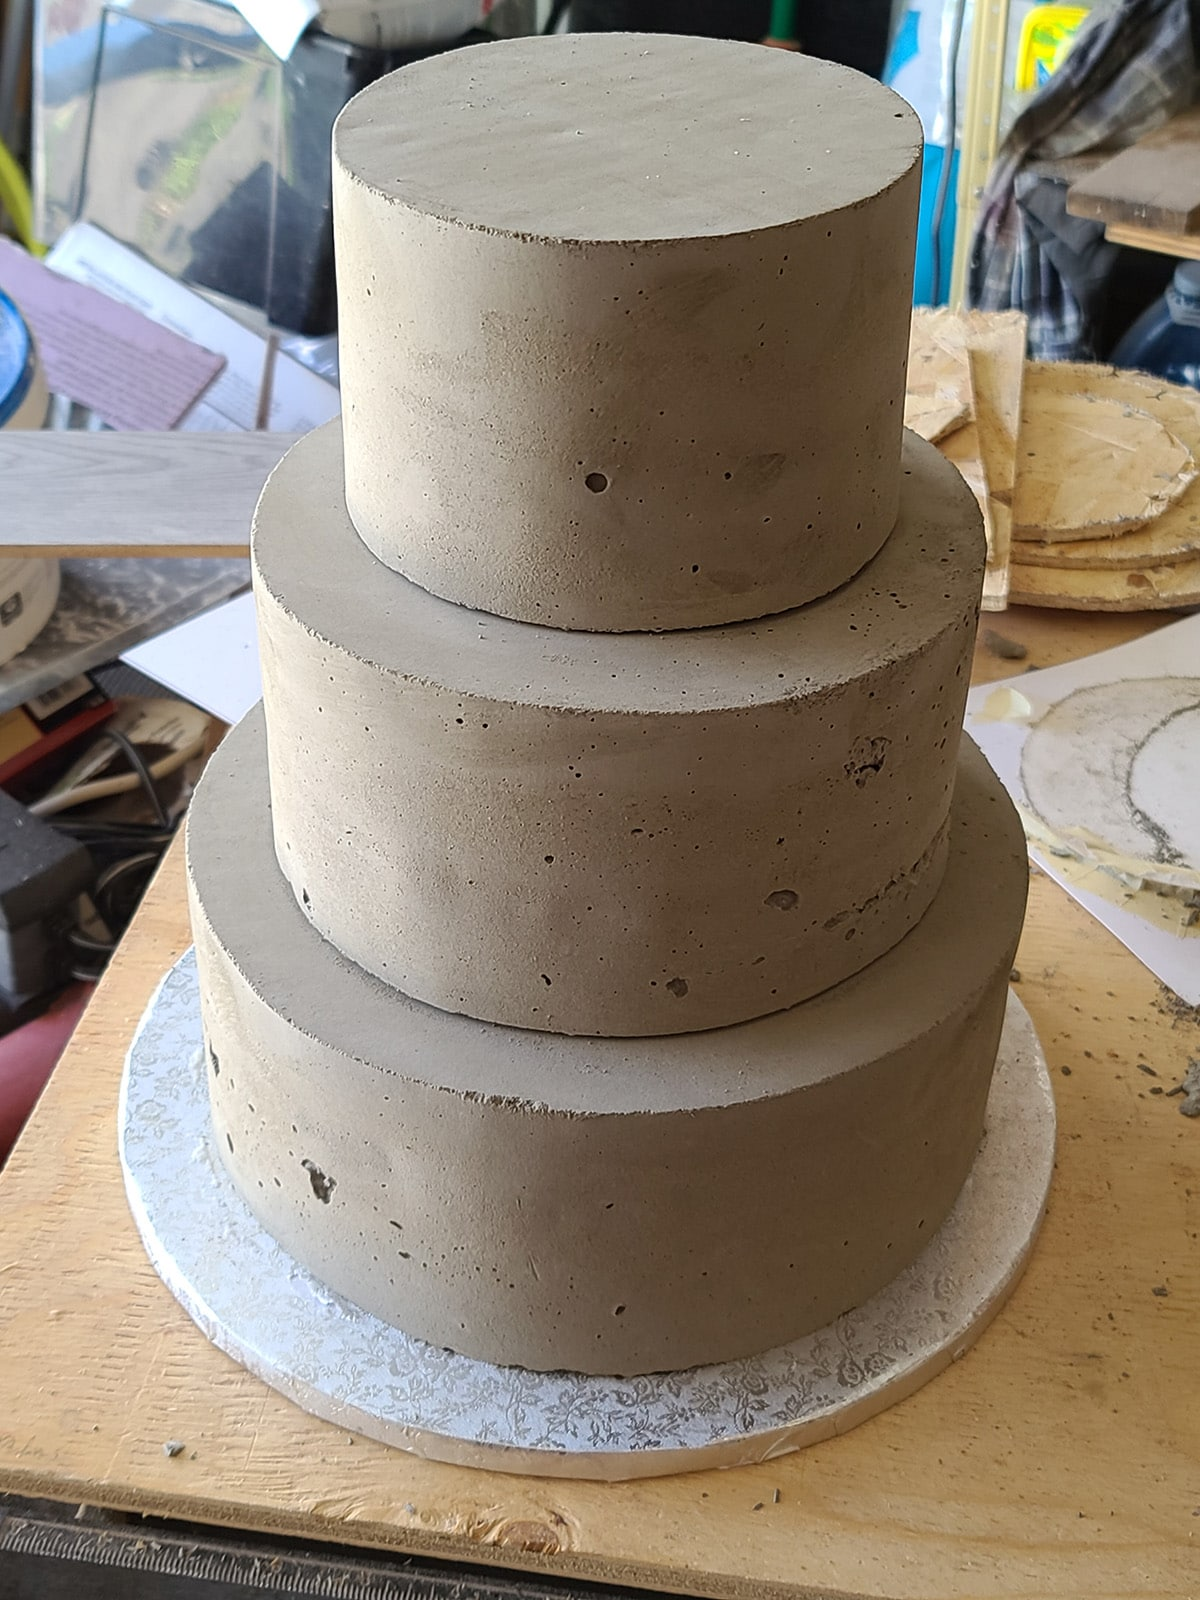 A 3 tiered plain wedding cake made of cement.